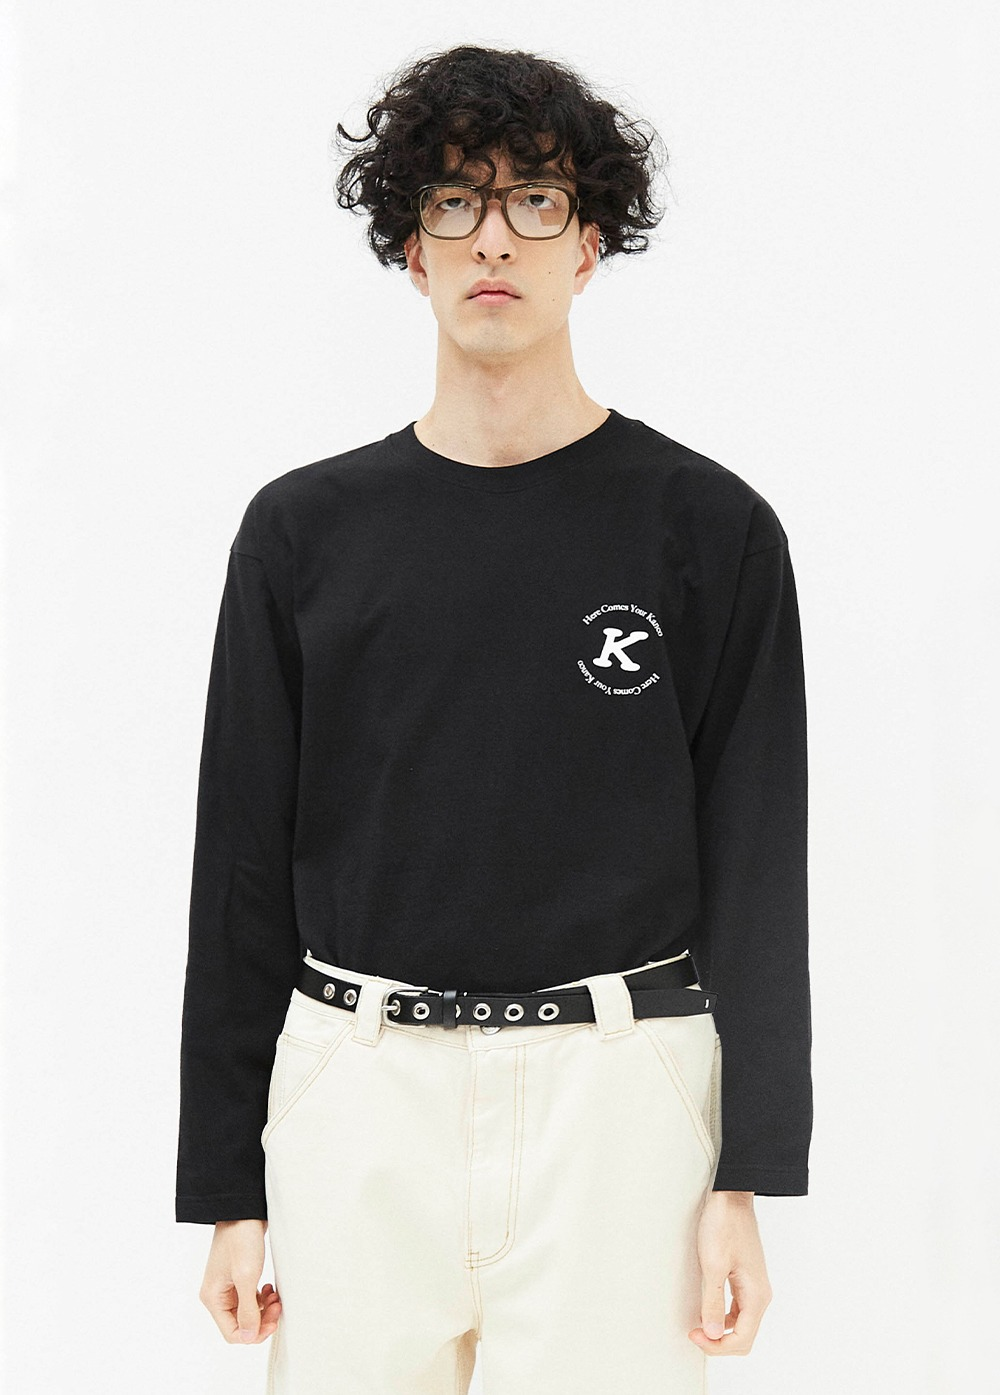 KANCO SERIF LONG SLEEVE TEE black